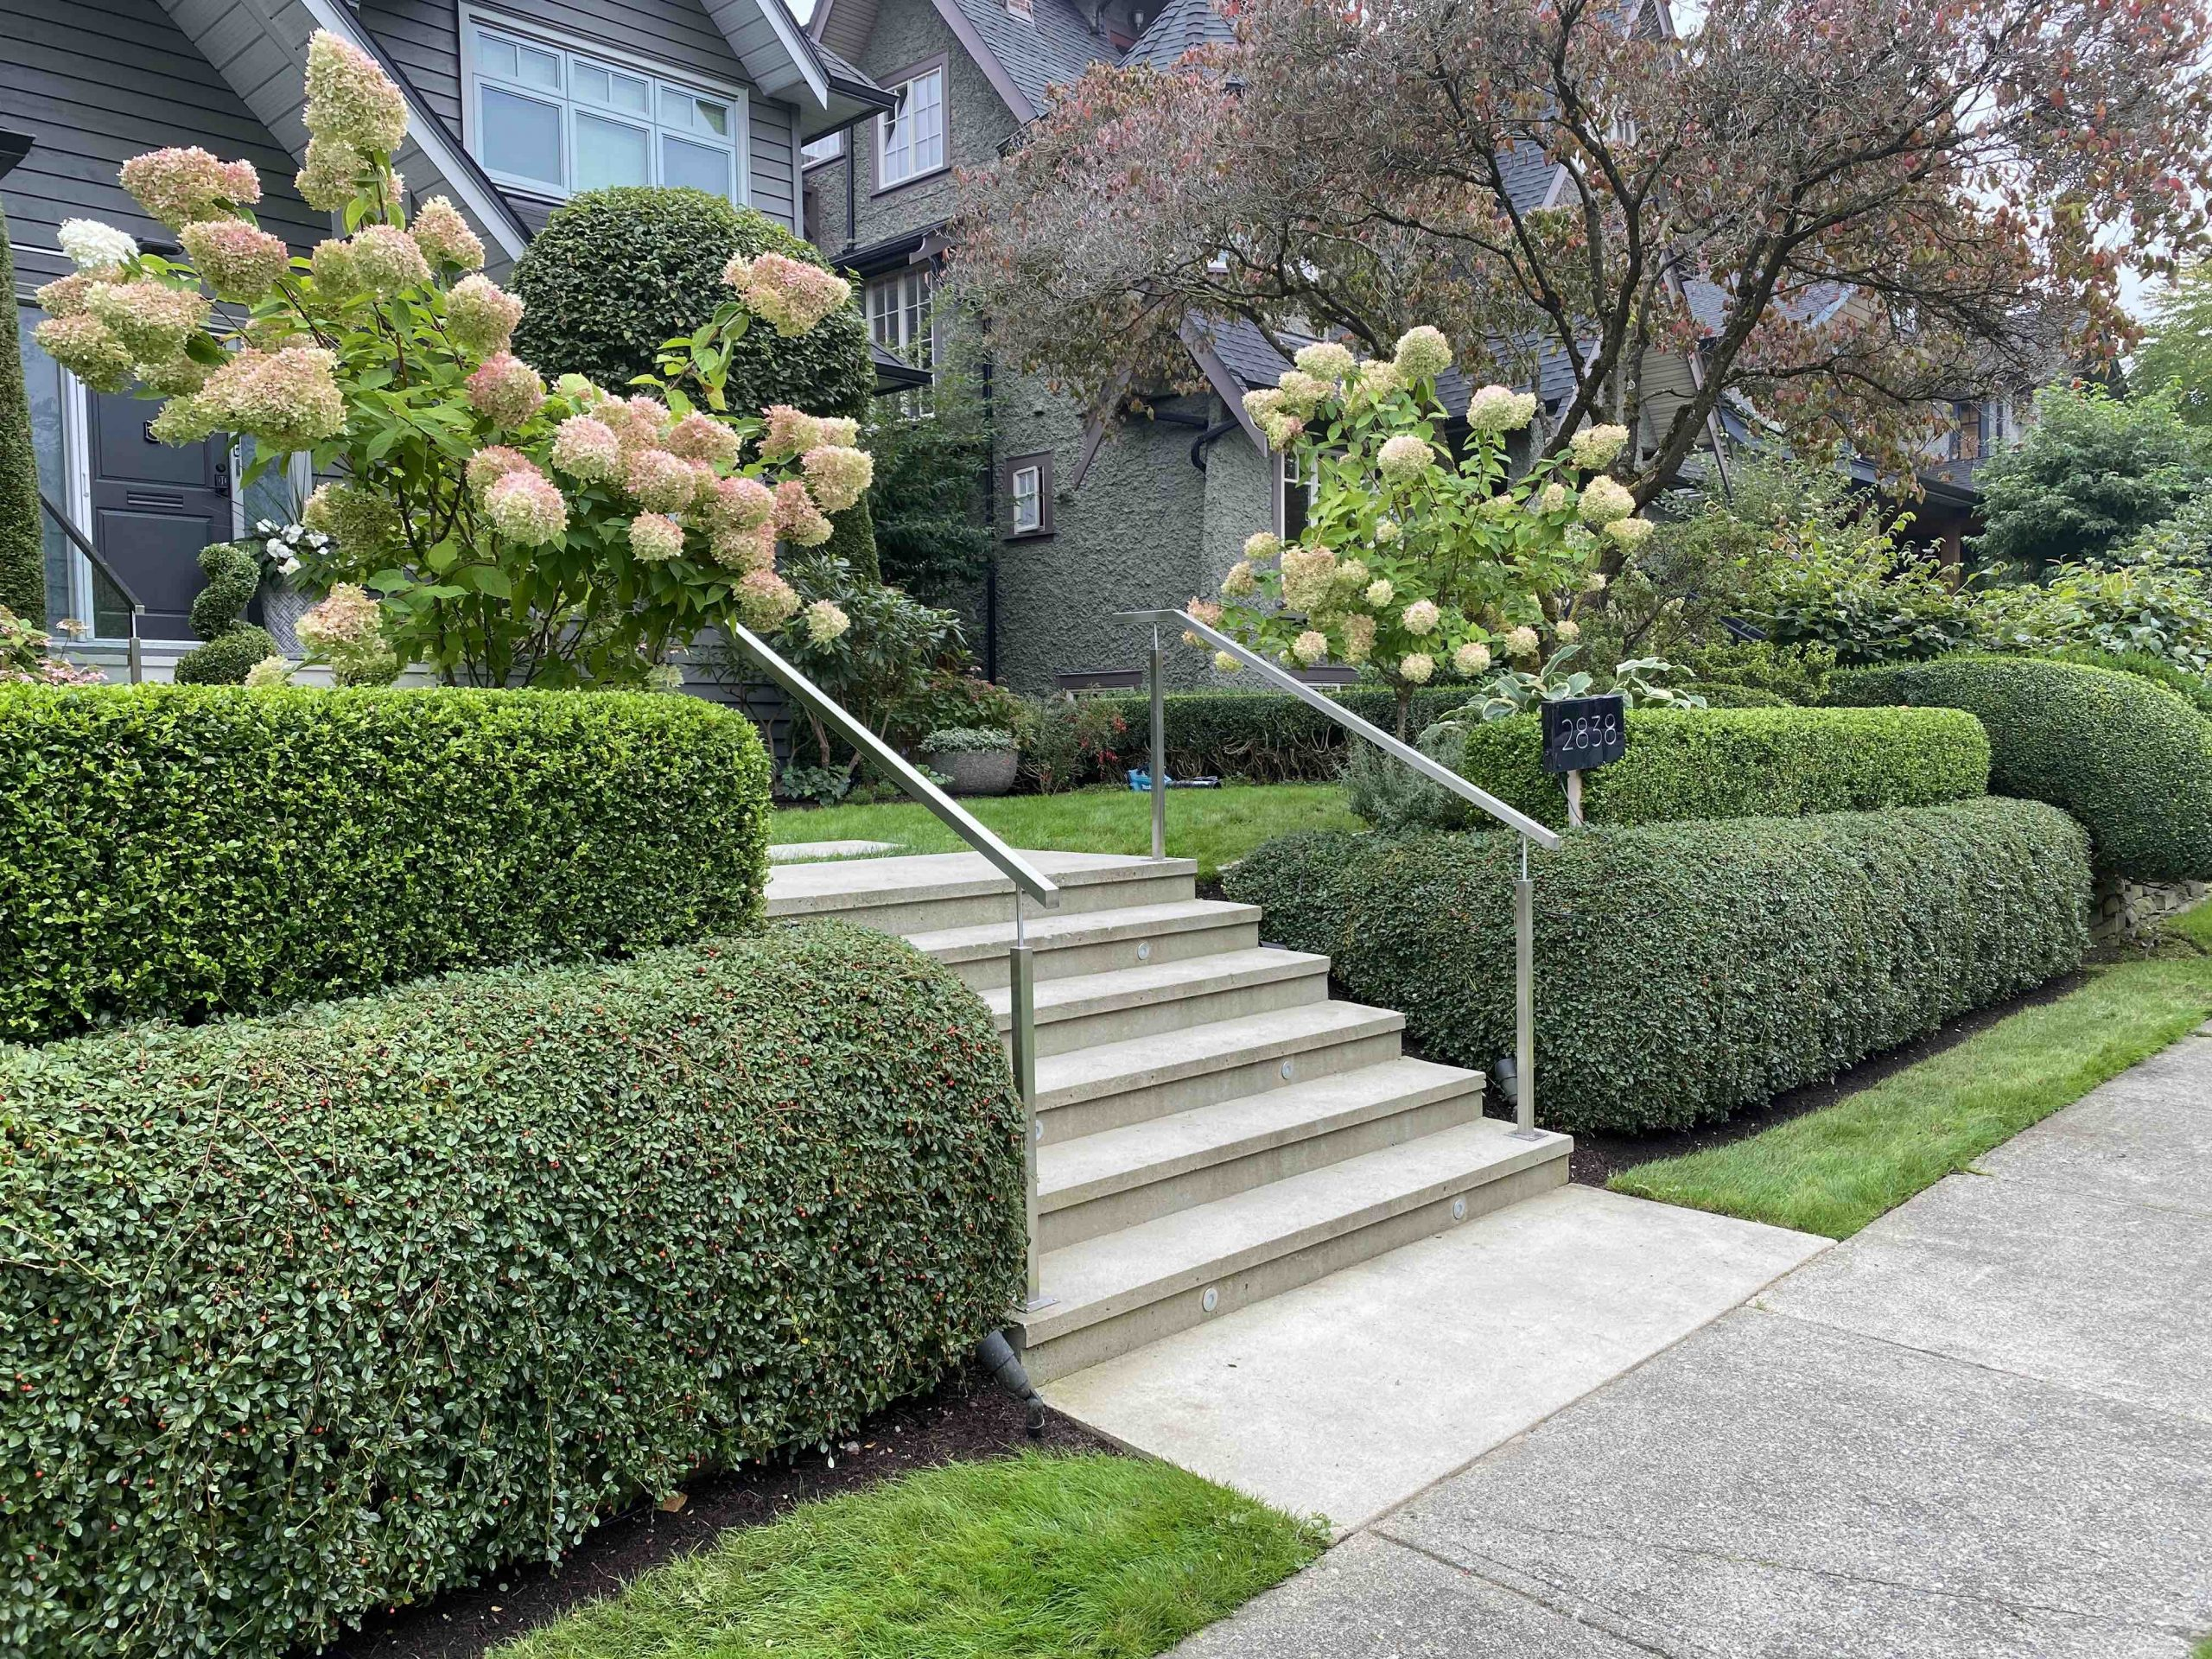 Hedge trimming Vancouver BC